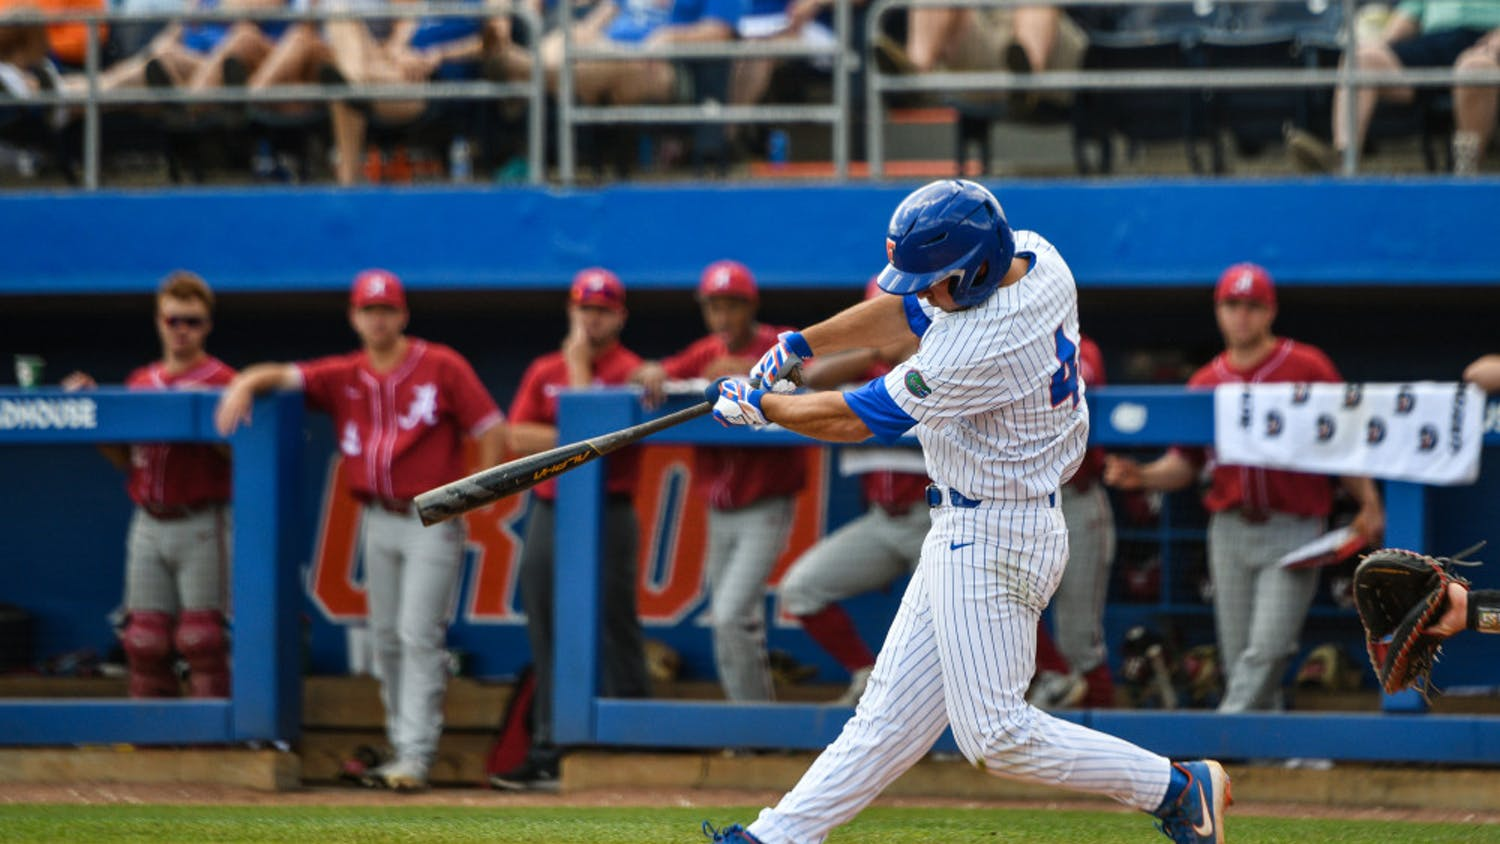 All-American Jud Fabian cranked out two home runs in a winning effort Tuesday